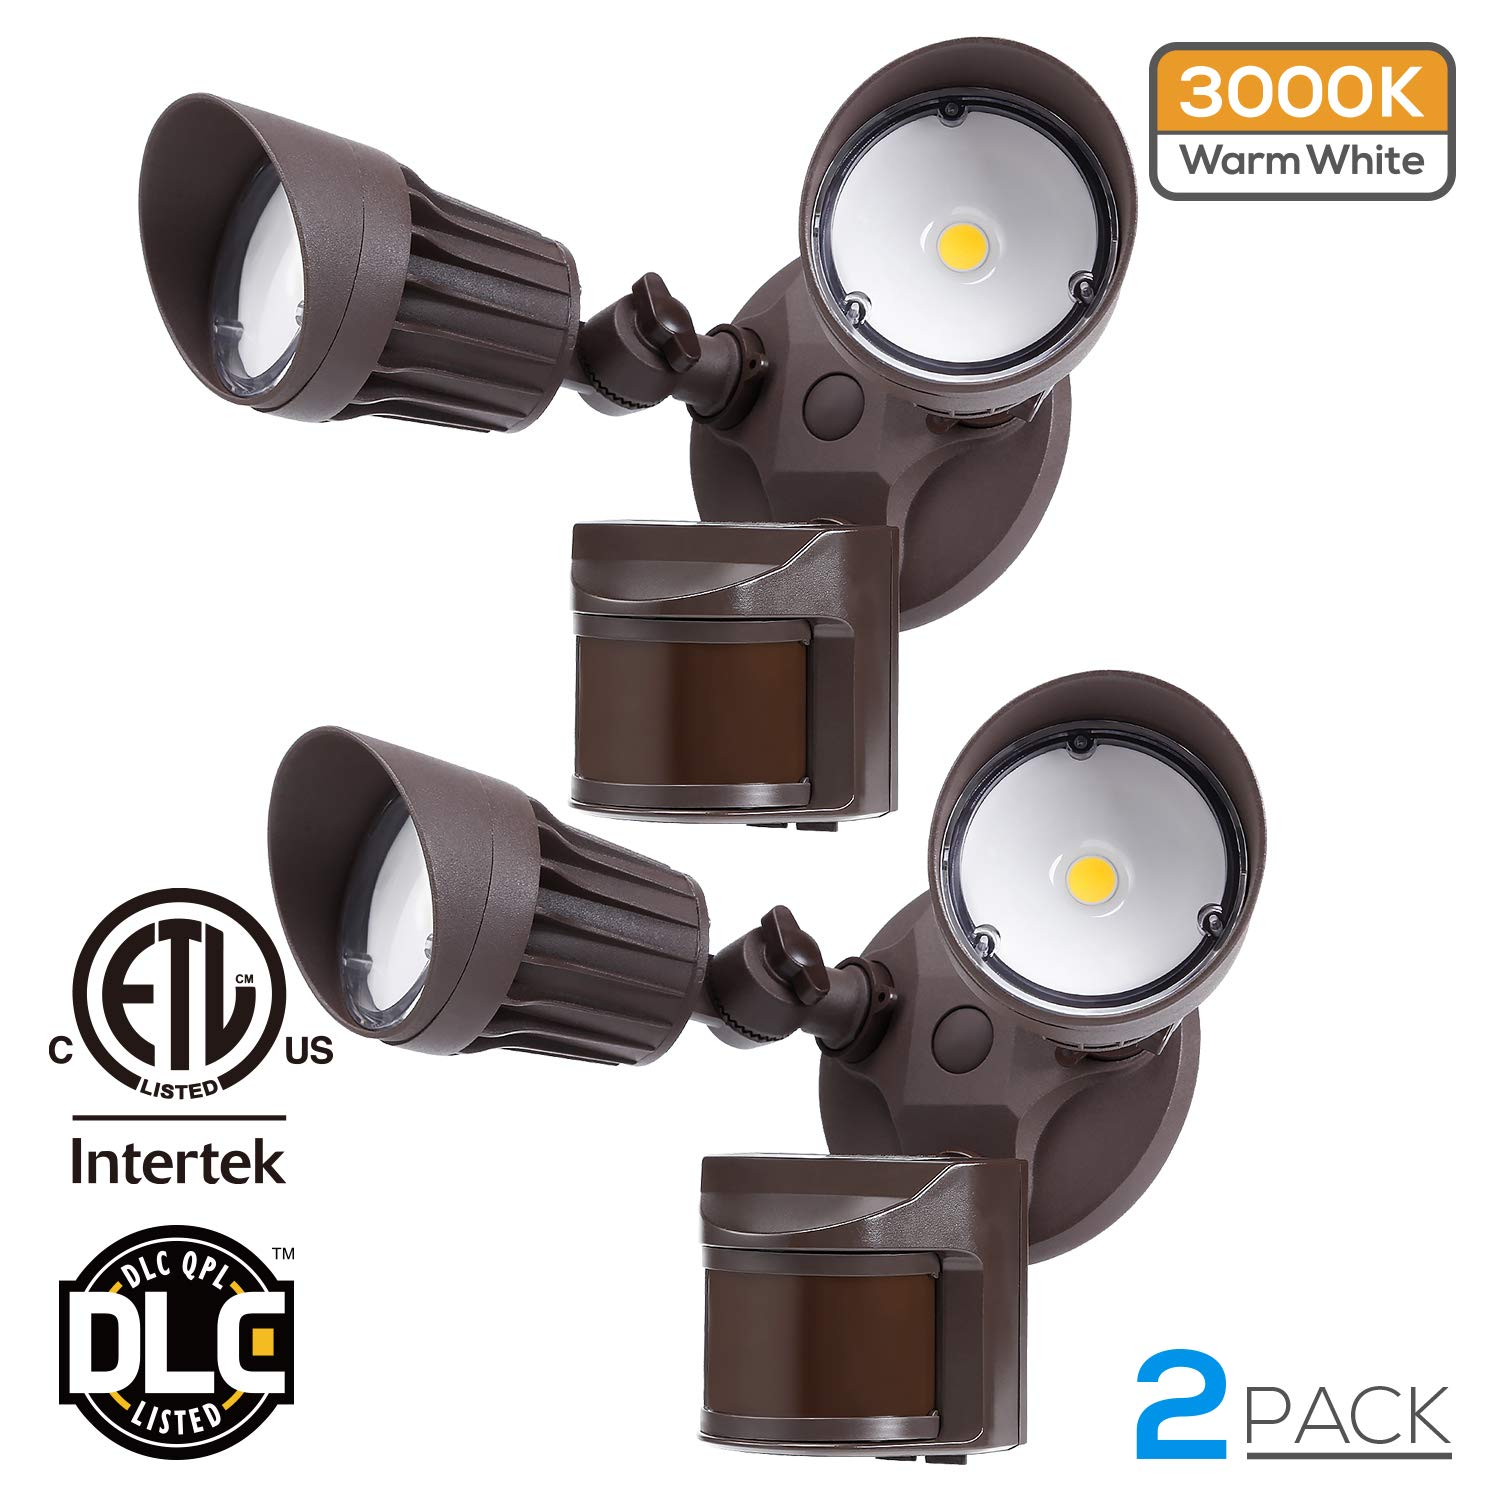 LEONLITE 20W Dual-Head Motion-Activated LED Outdoor Security Light with Photocell, ETL & DLC Listed, 3 Lighting Modes, 120W Equiv, 3000K Warm White, Waterproof, 5 Years Warranty, Bronze, Pack of 2